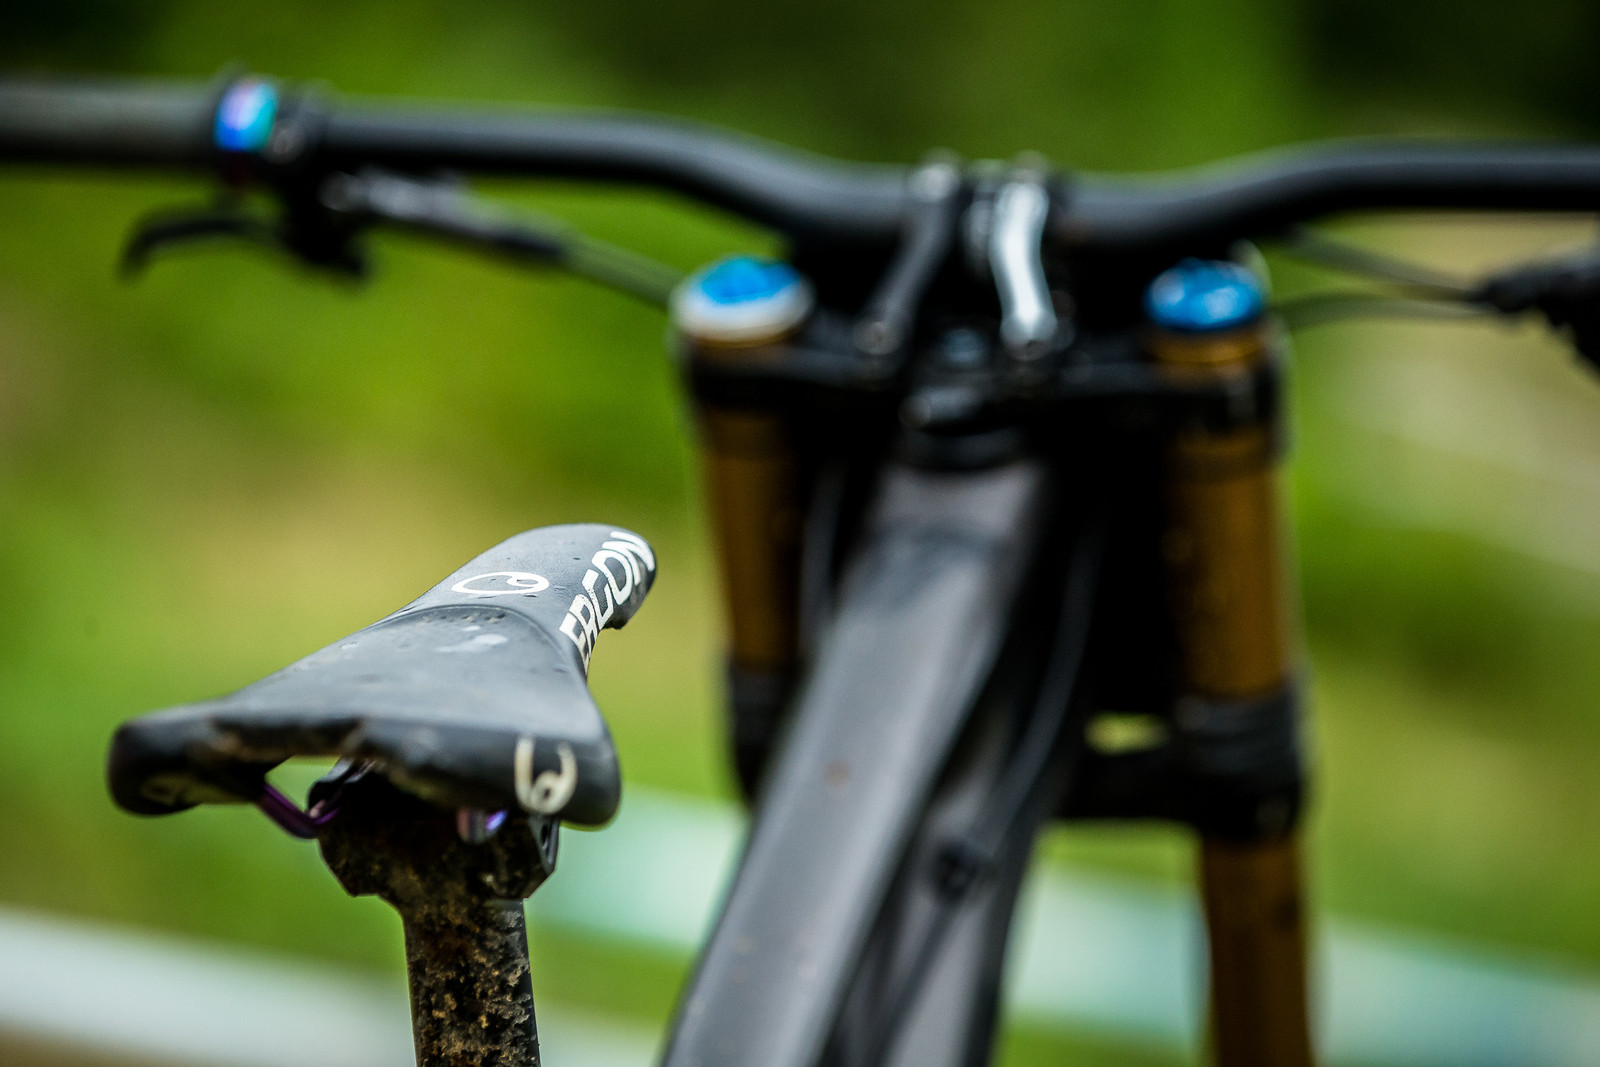 Ergon SMD2 MTB Gravity Saddle - WINNING BIKE: Tahnee Seagrave's Transition TR11 - Mountain Biking Pictures - Vital MTB